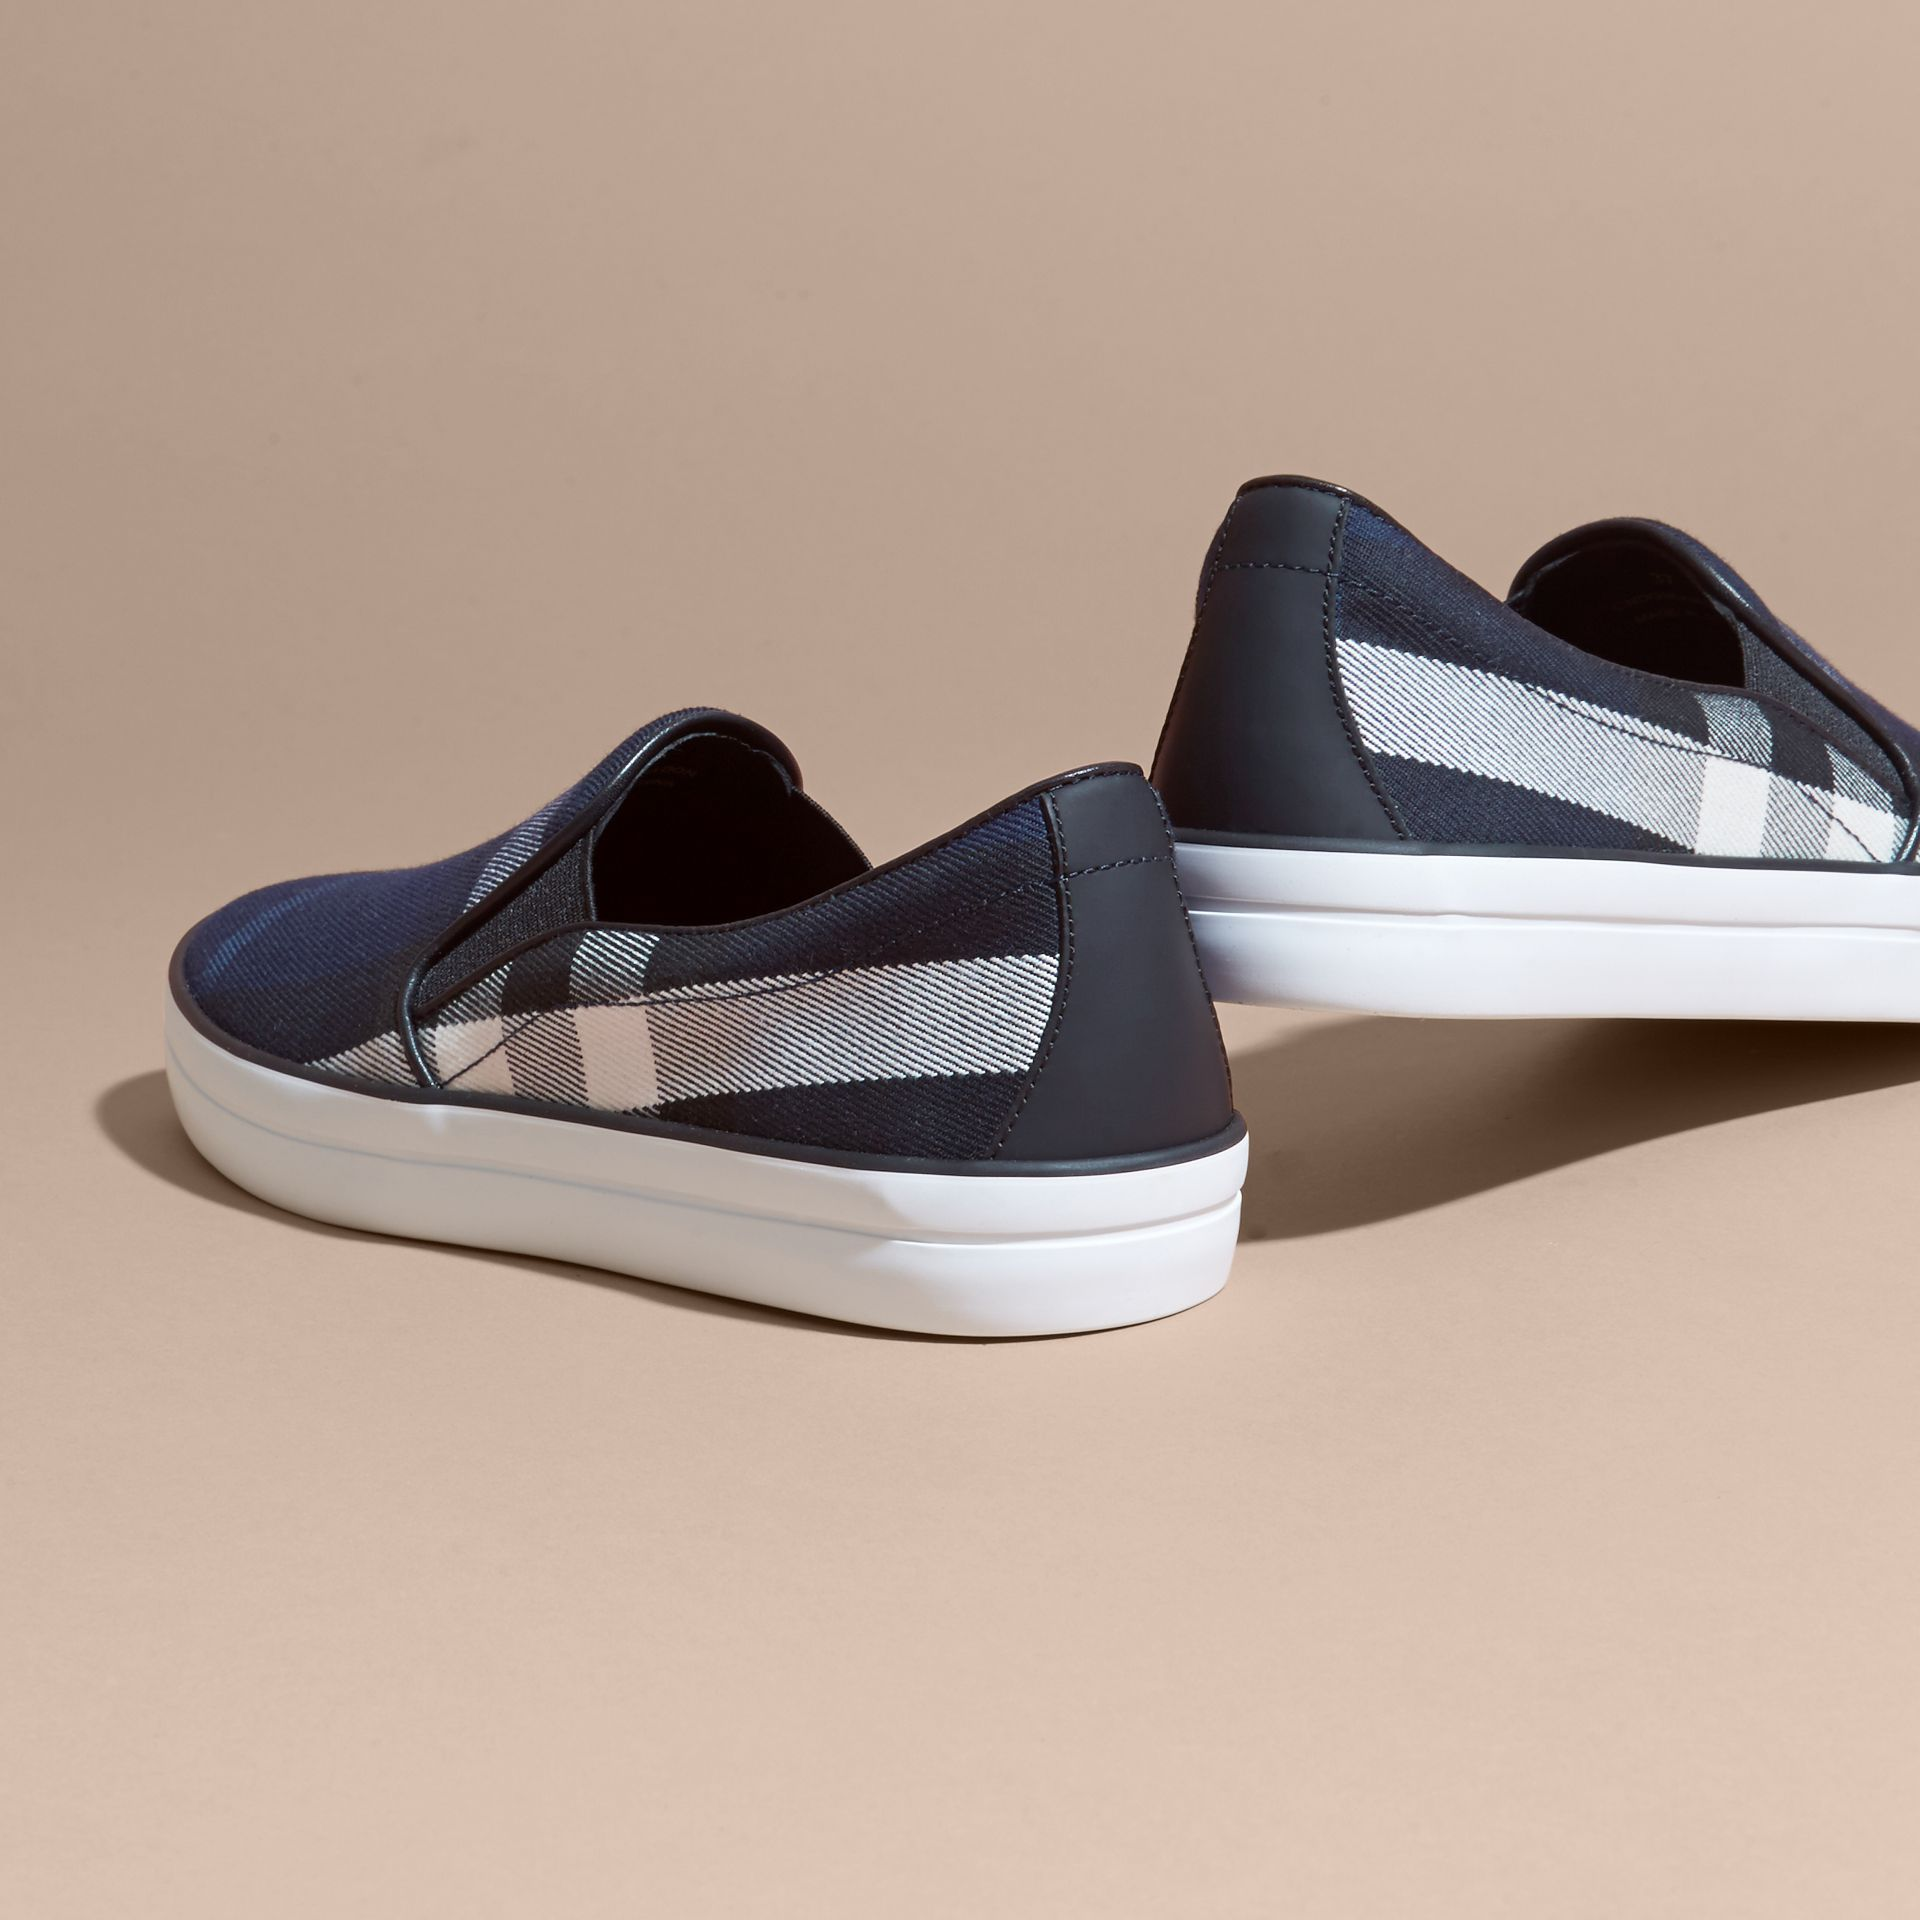 Overdyed House Check Cotton Slip-on Trainers in Indigo Blue - Women | Burberry - gallery image 4